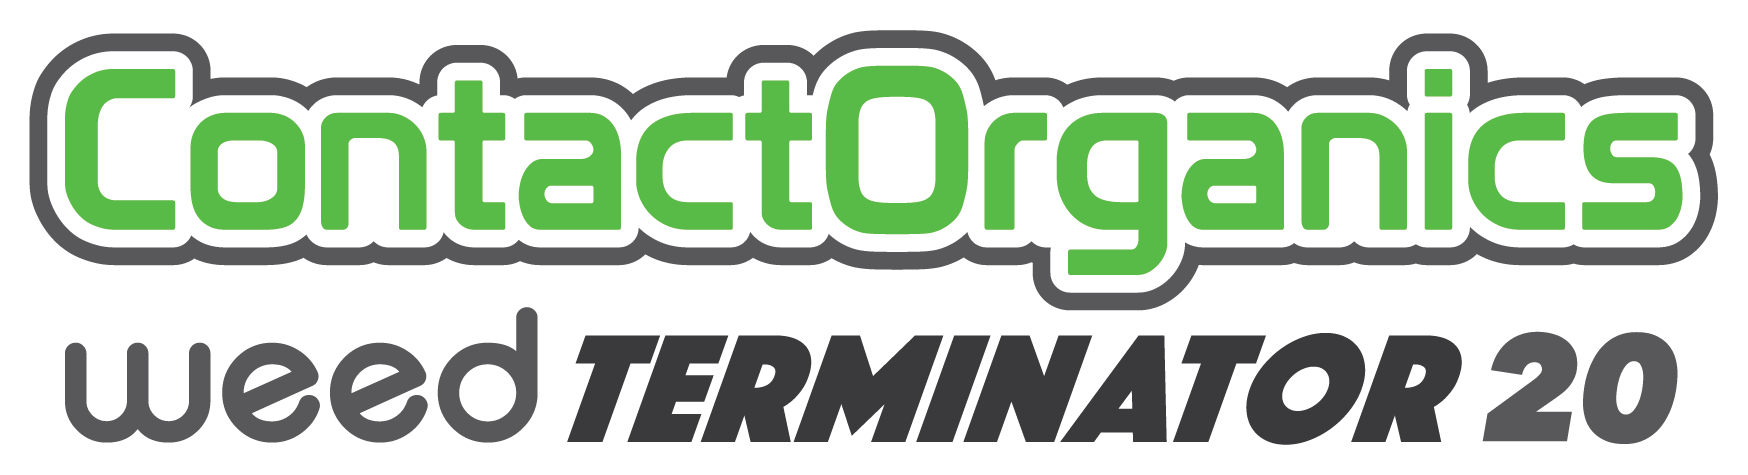 CO WeedTerminator20_Logo-01